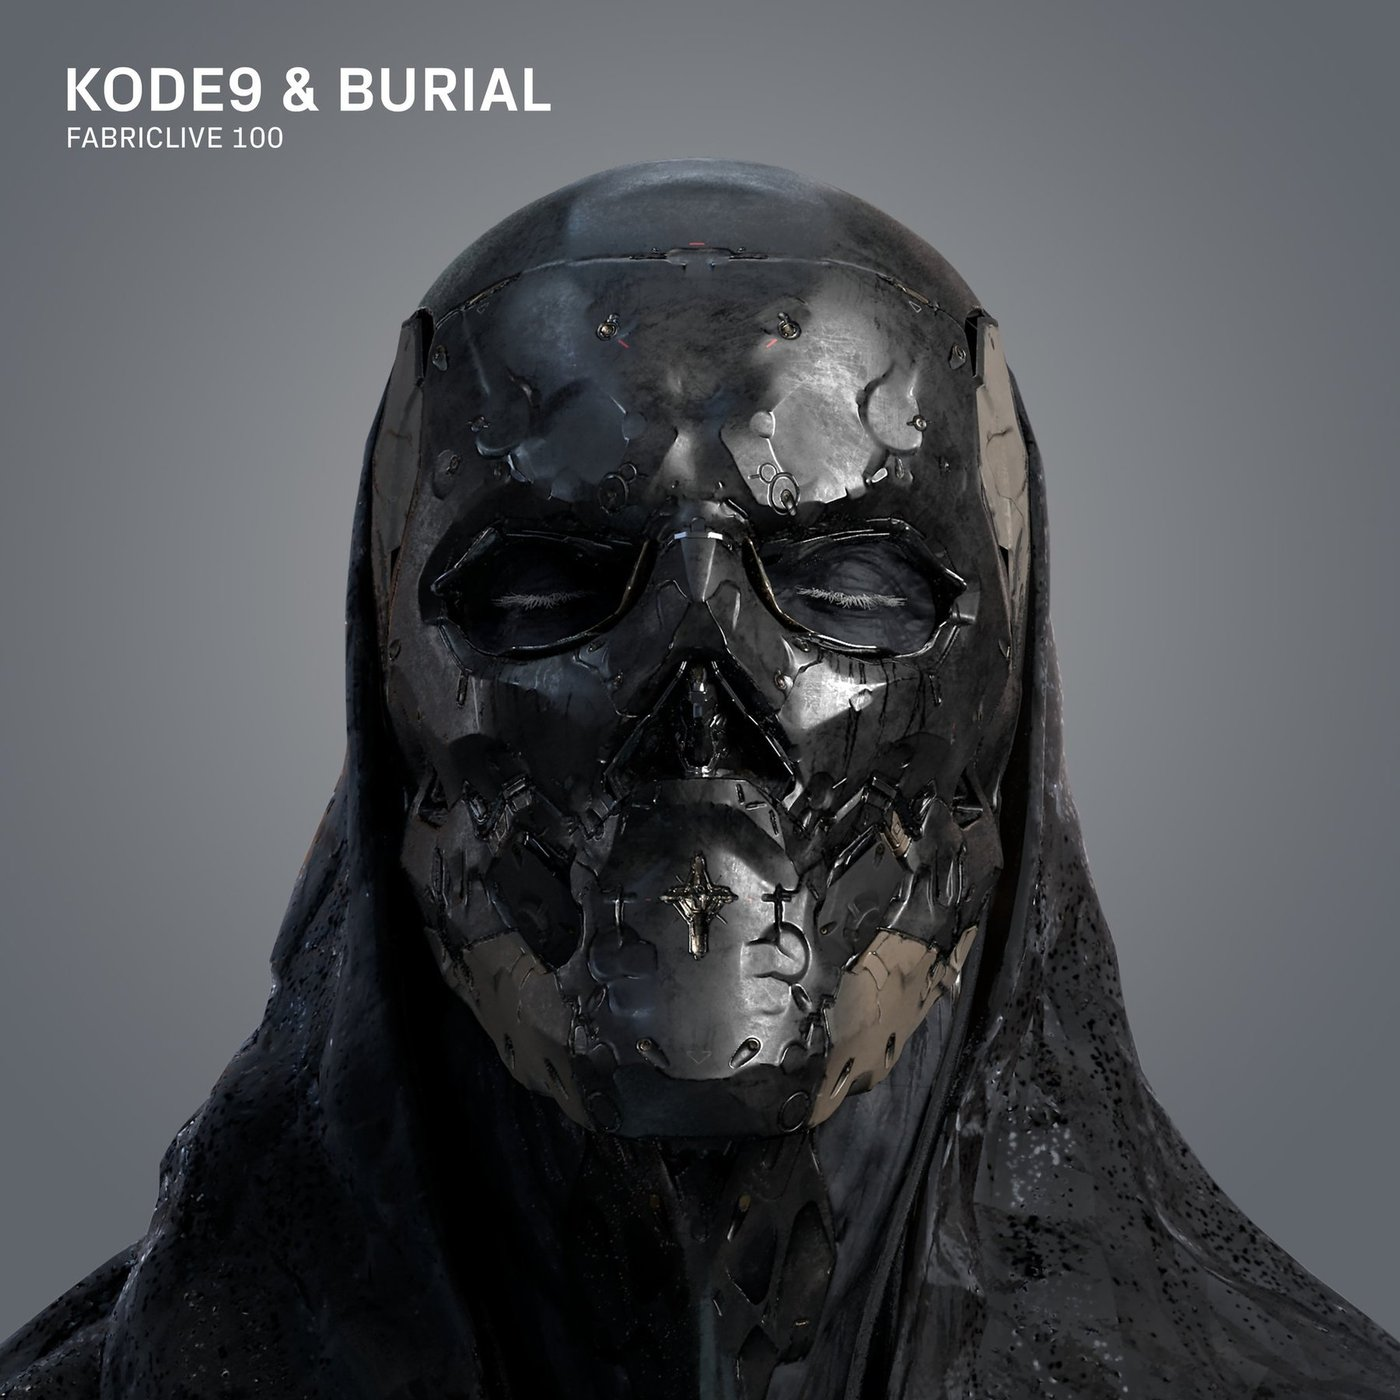 Kode9,Burial Kode9 & Burial. Fabriclive 100. Kode9 & Burial jon richter deadly burial